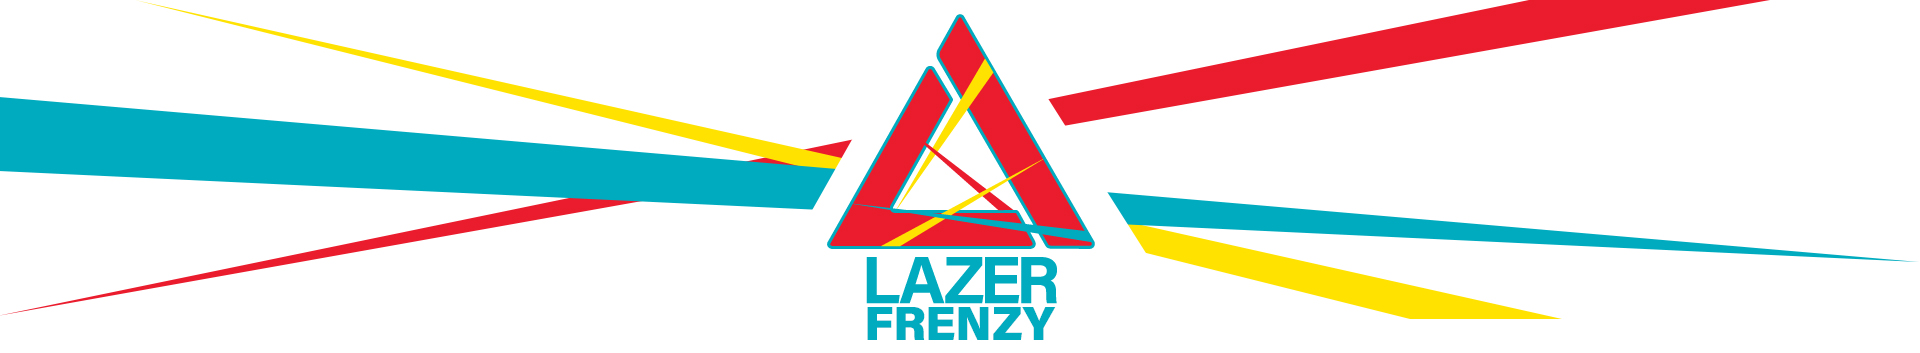 activekidz lazer frenzy